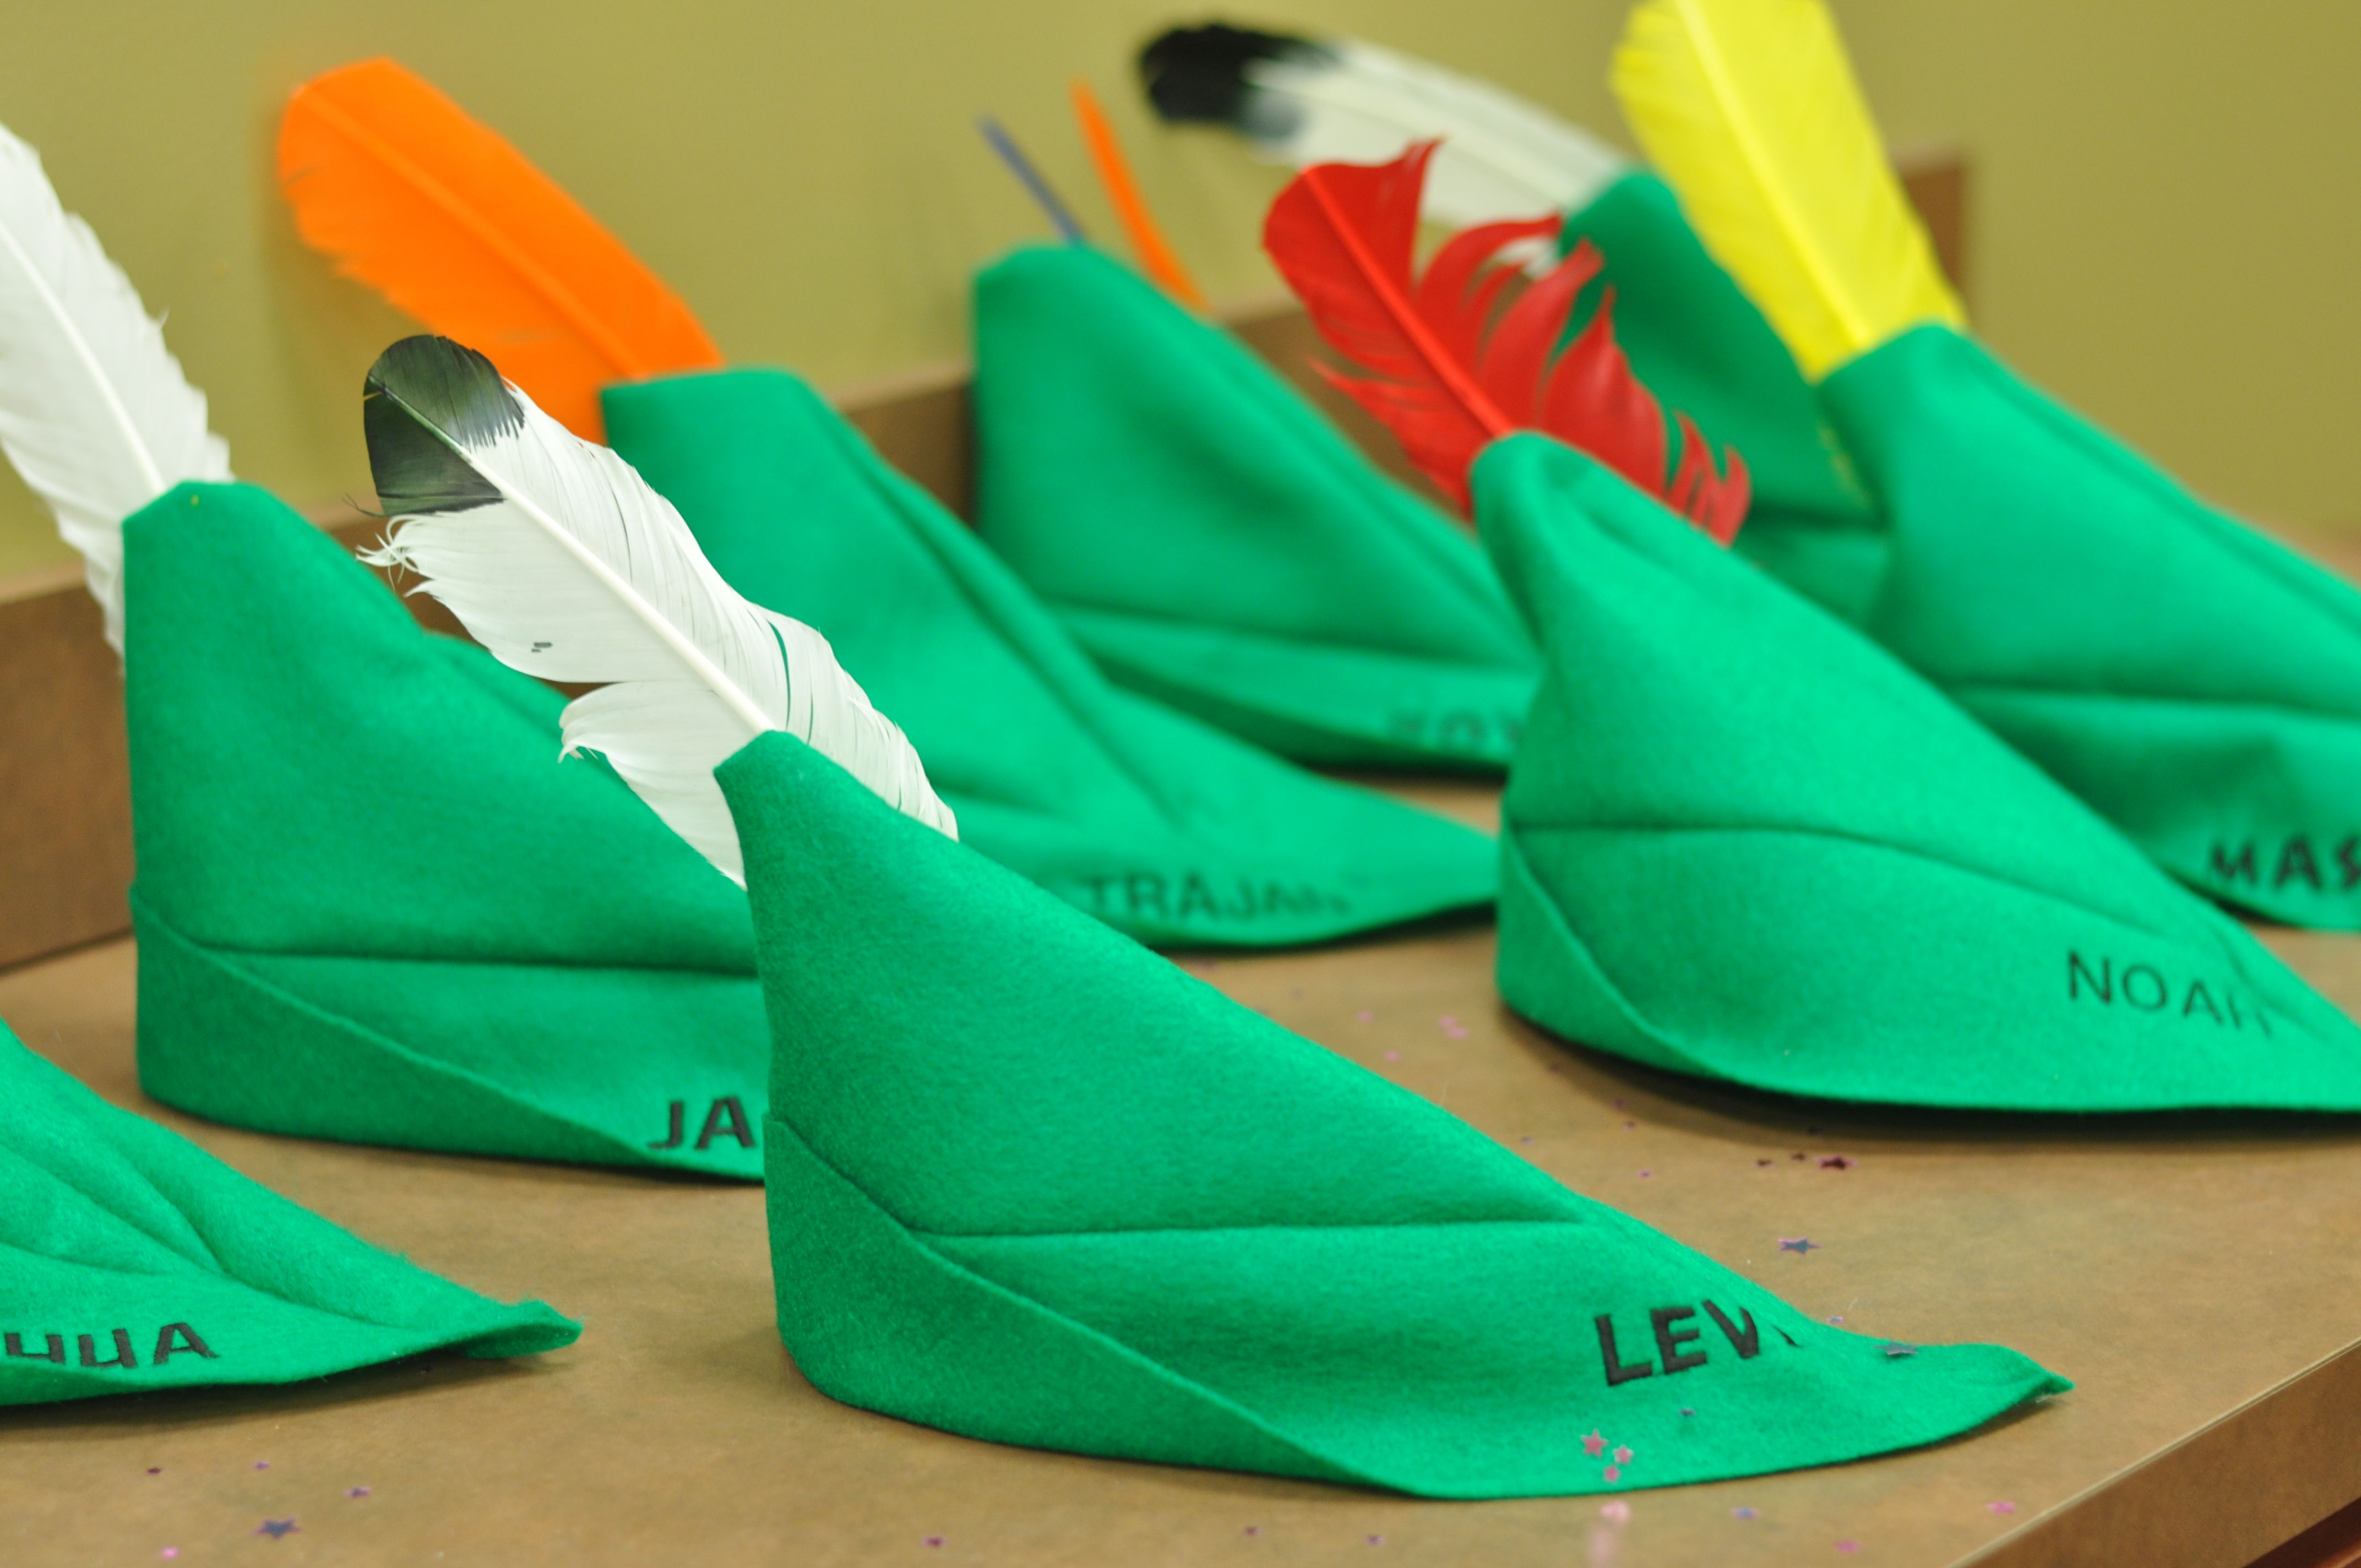 b7d0cb4248b Fairy Party Favors for Boys! We did peter pan hats with each of the boy  attendee s names on them! They are made from felt pattern is available free  online!